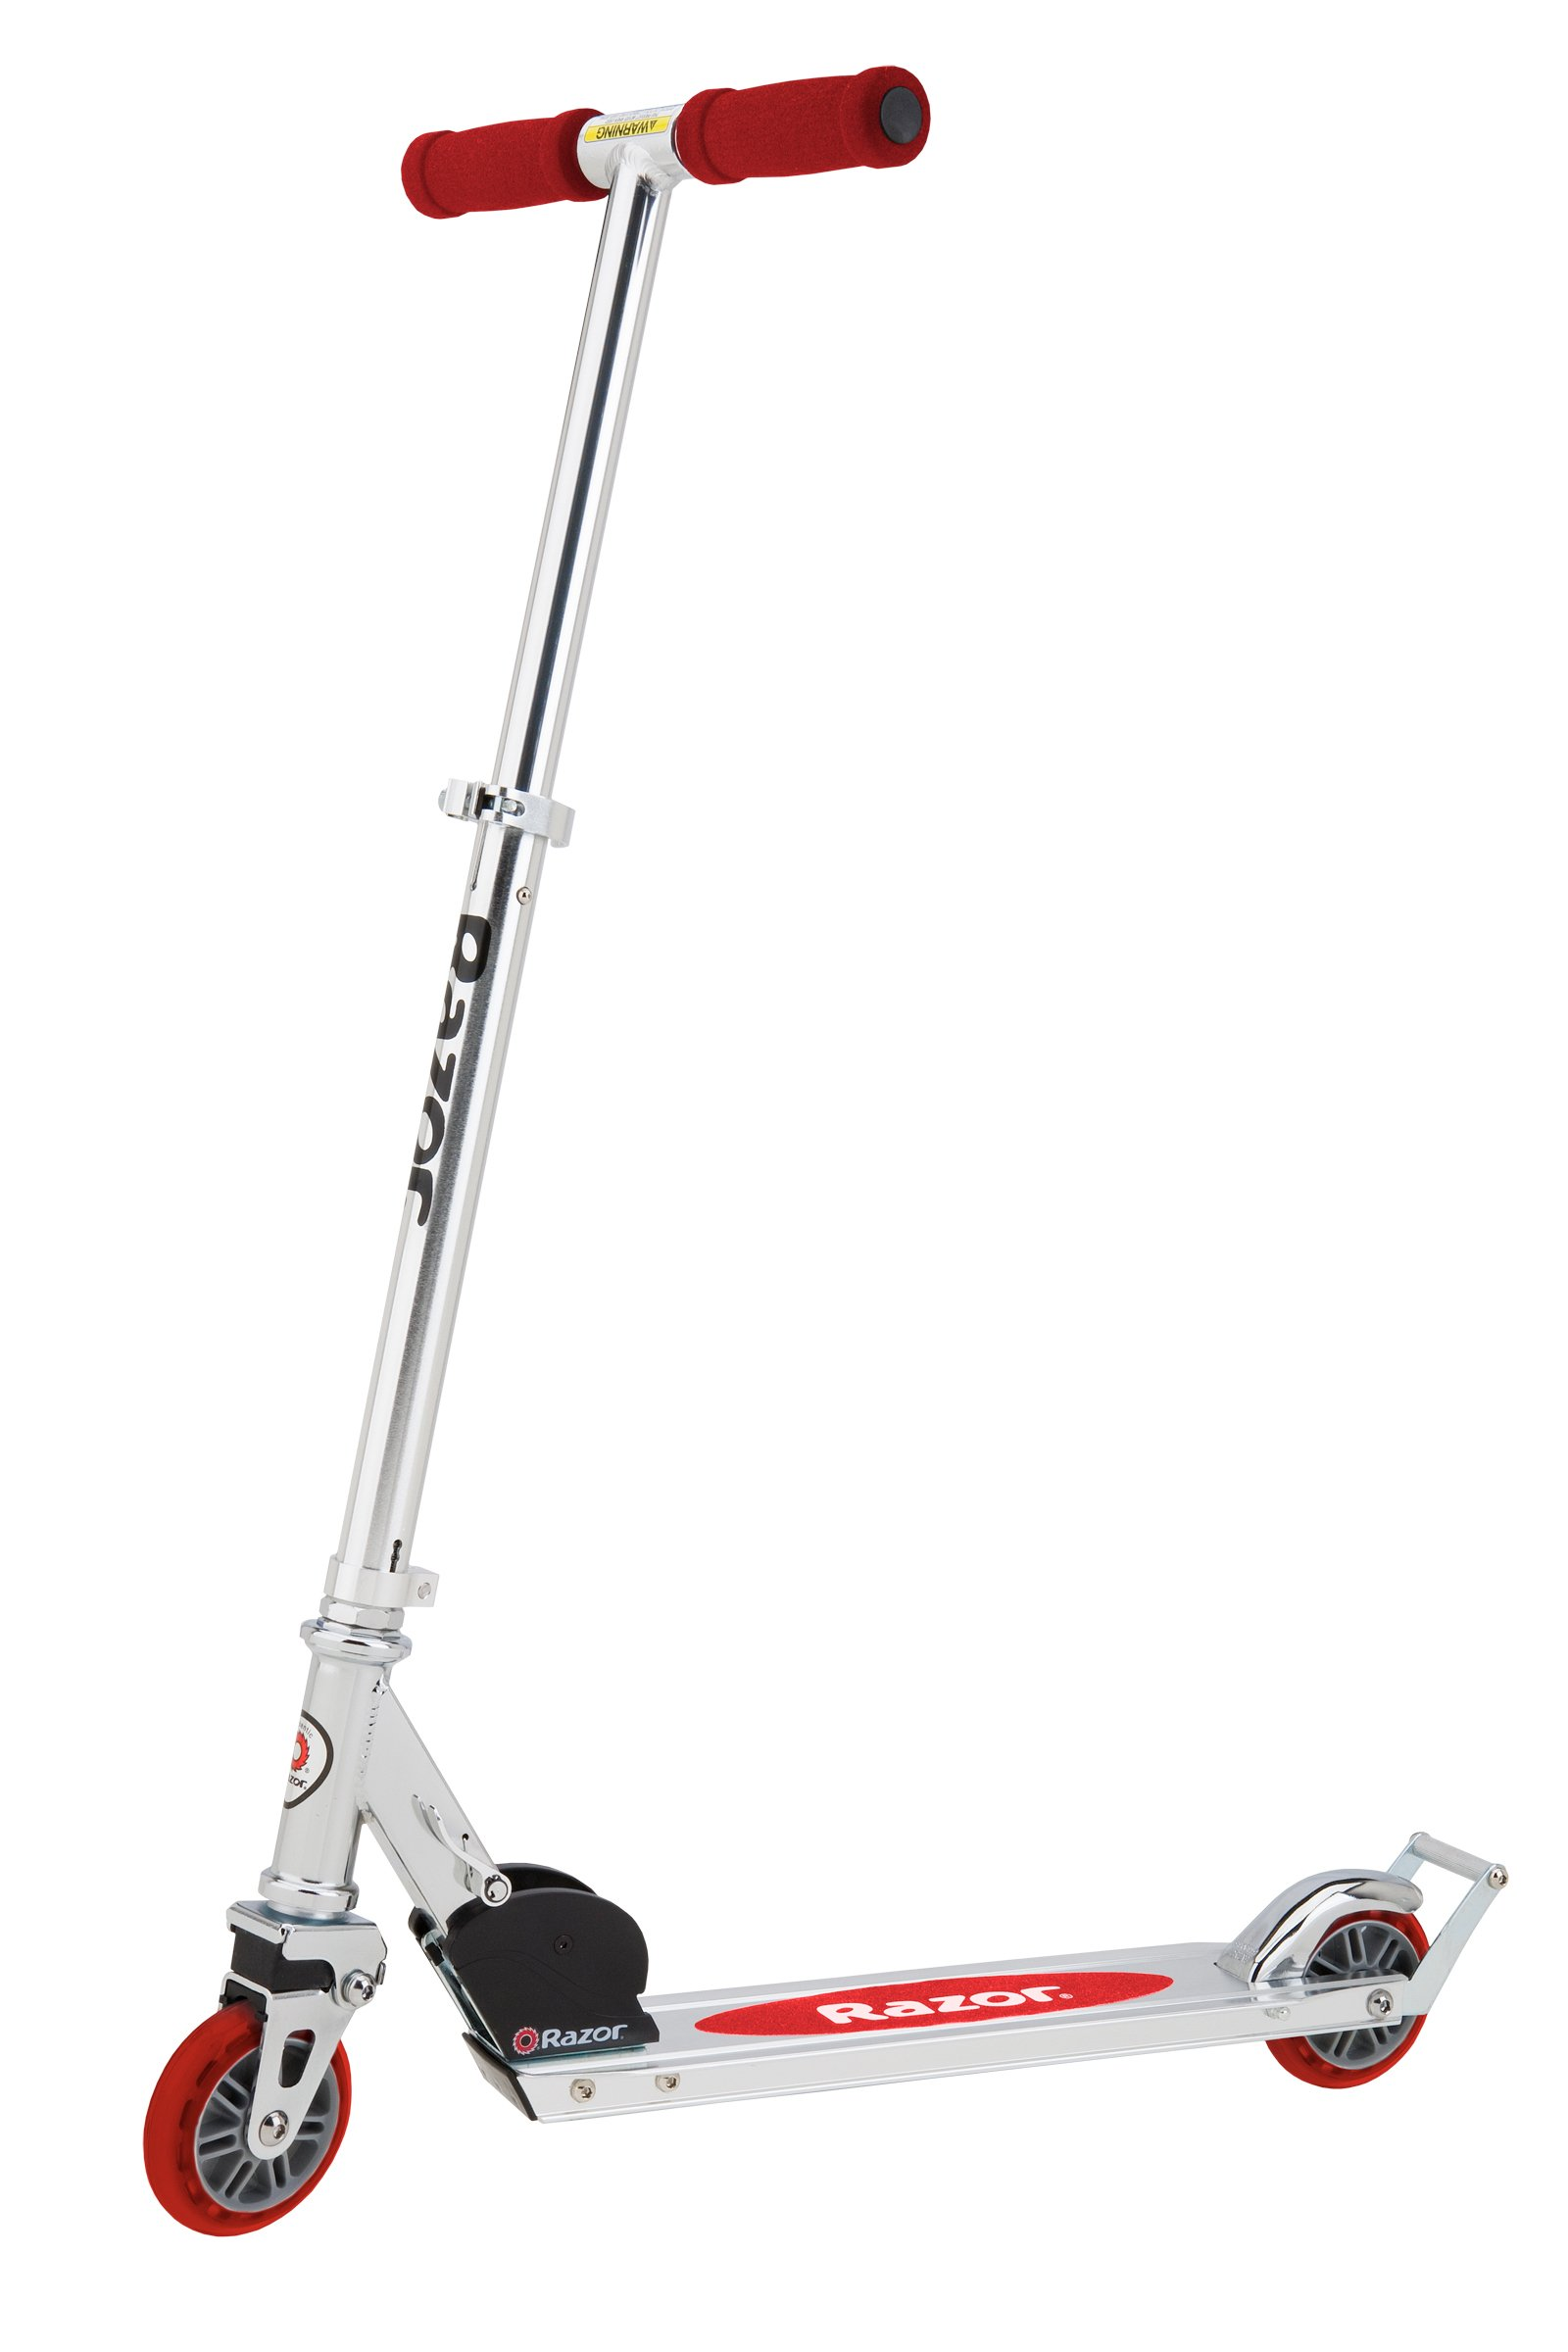 Razor A2 Kick Scooter (Red) by Razor